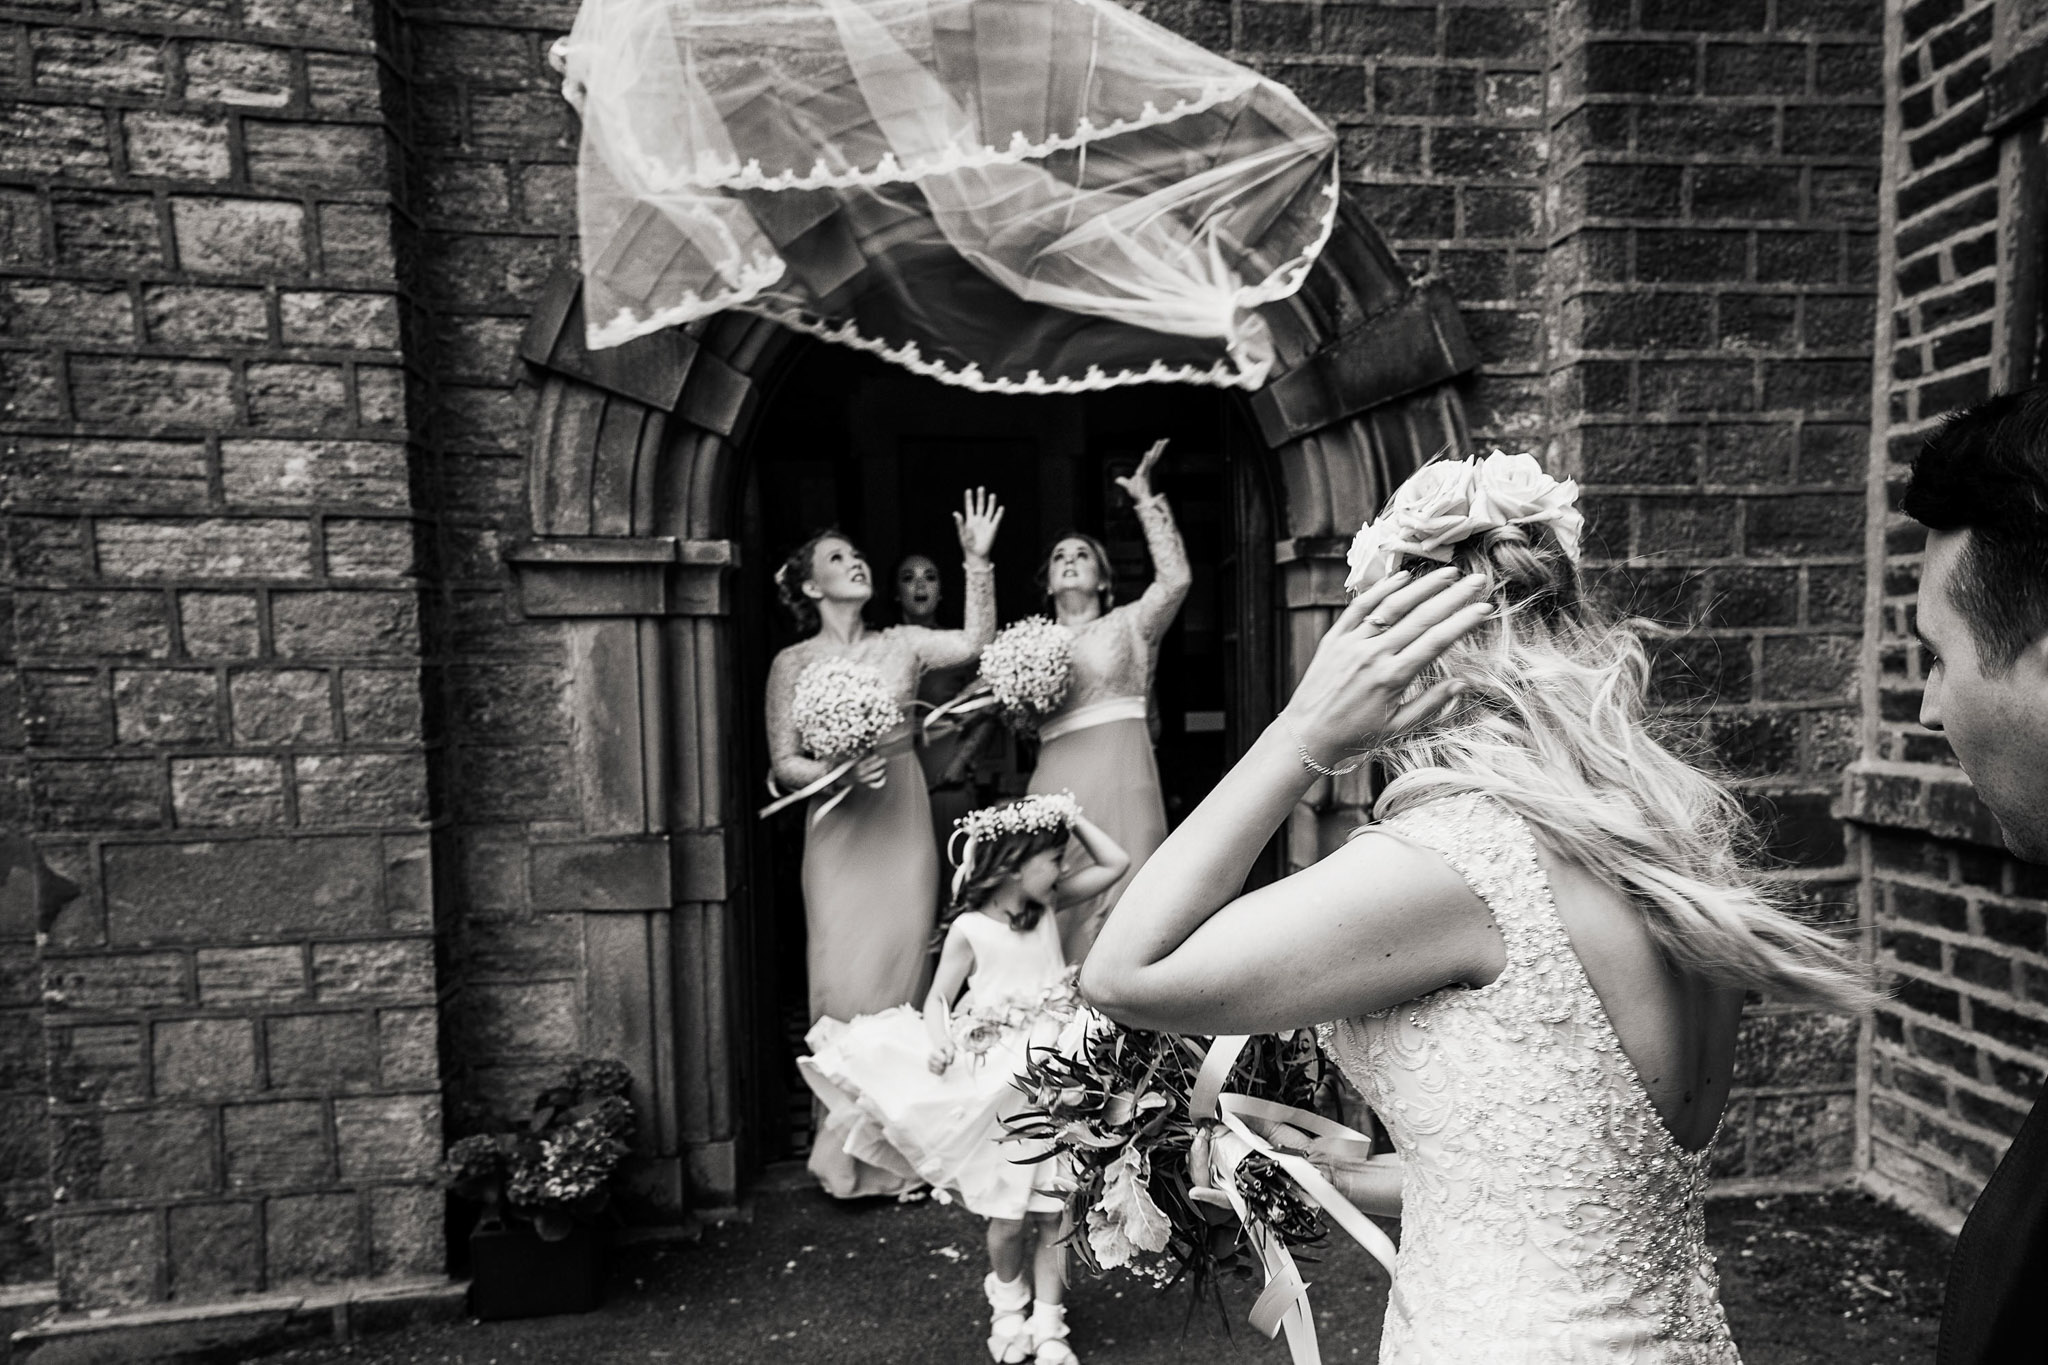 Bridesmaid in church archway attempt to catch brides veil - photo by Andrew Billington Photography